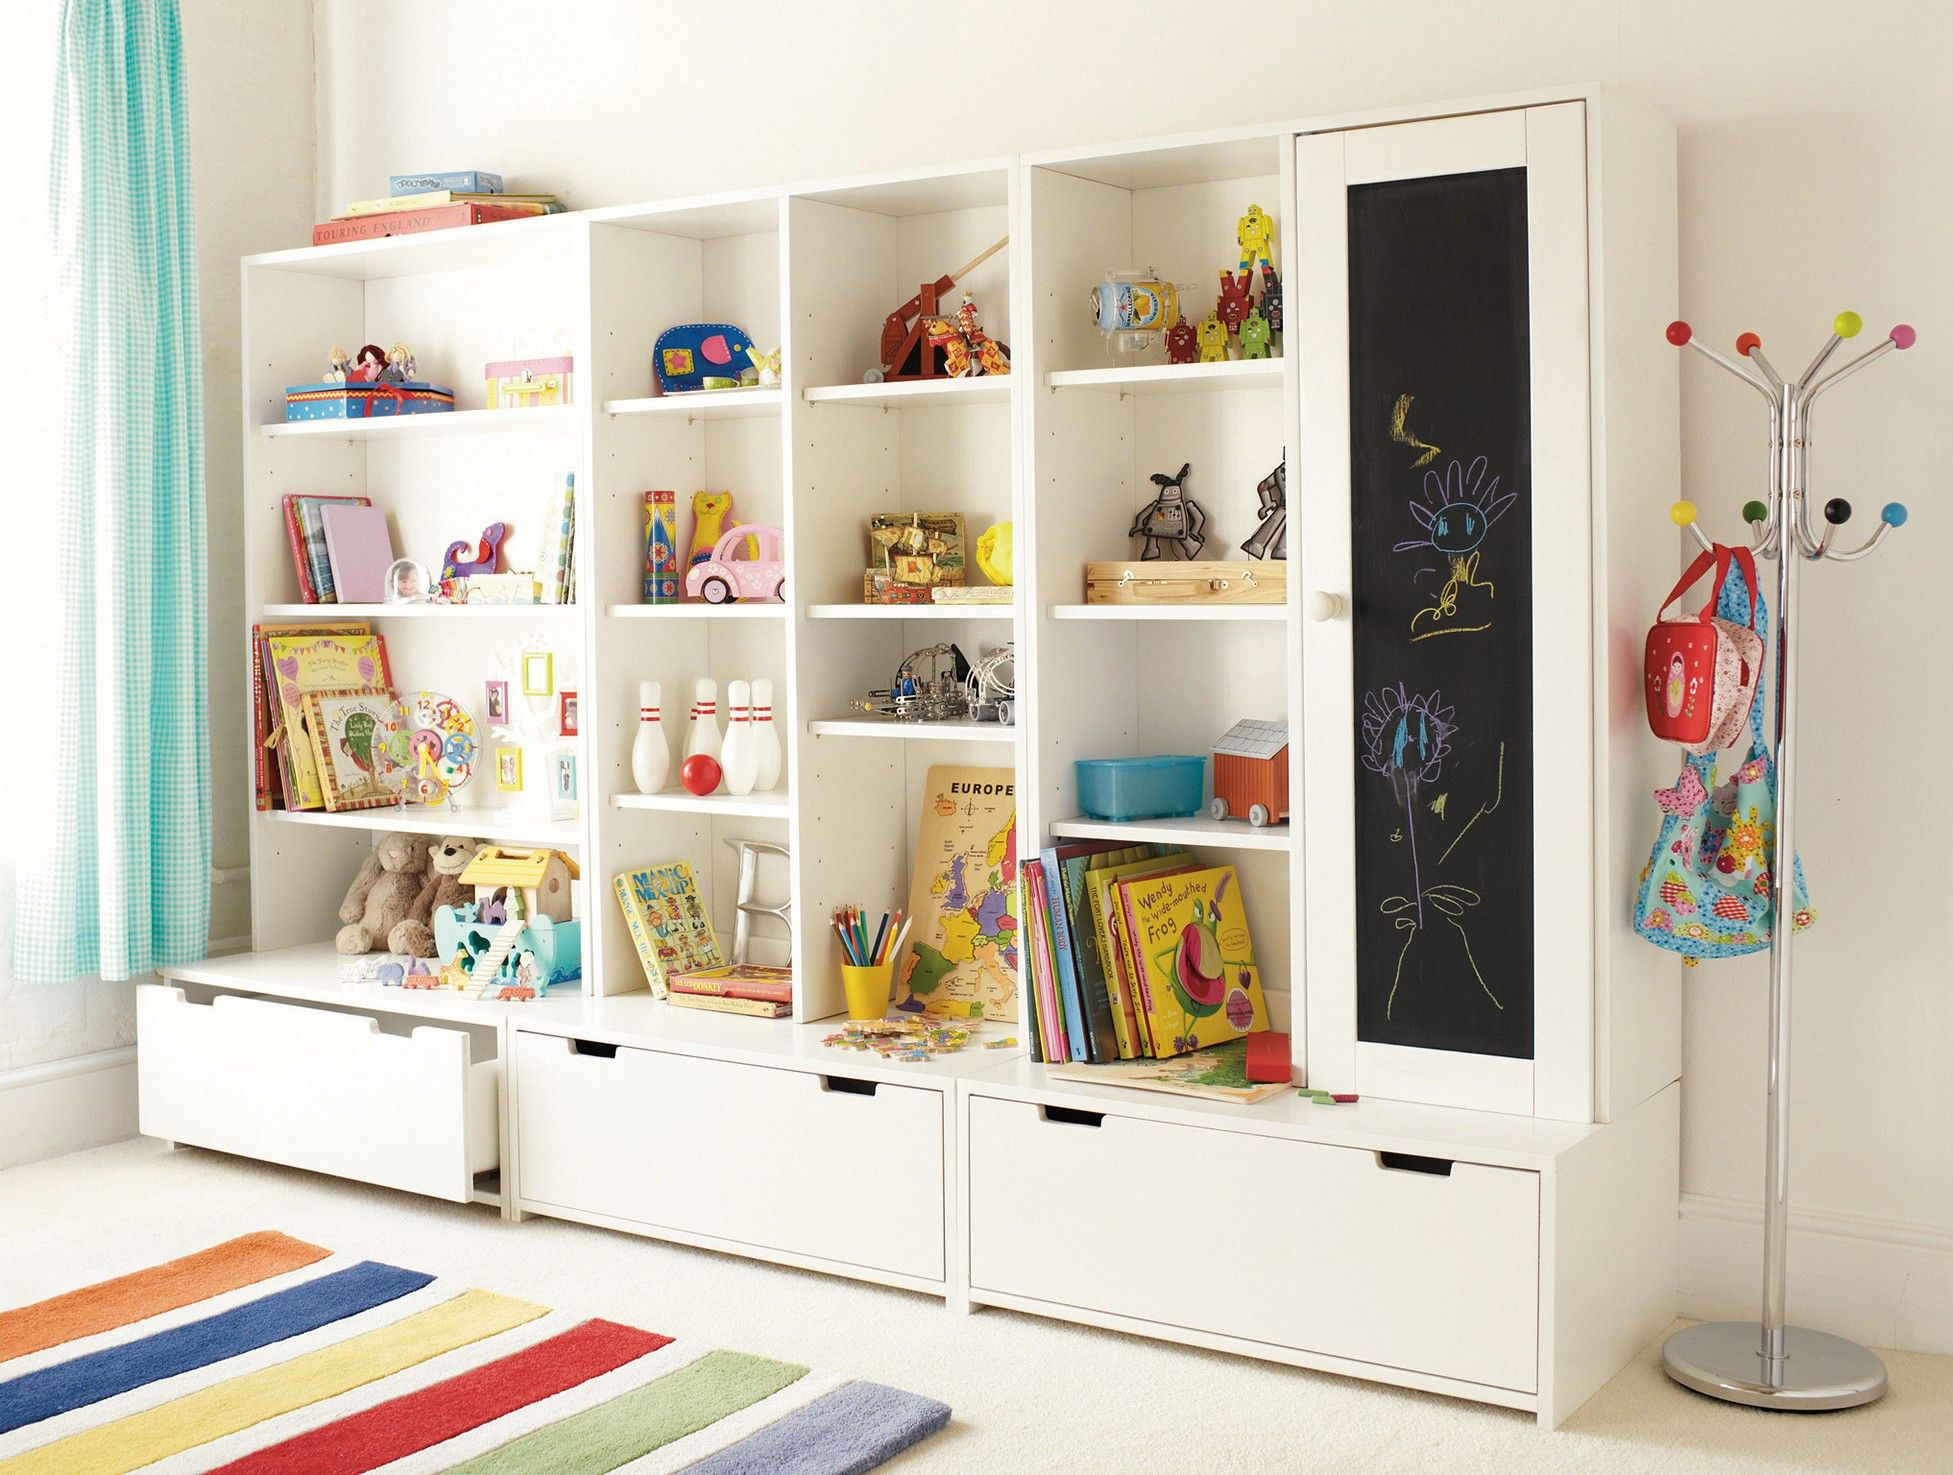 Toy Storage Ideas Diy Plans In A Small E That Your Kids Will Love